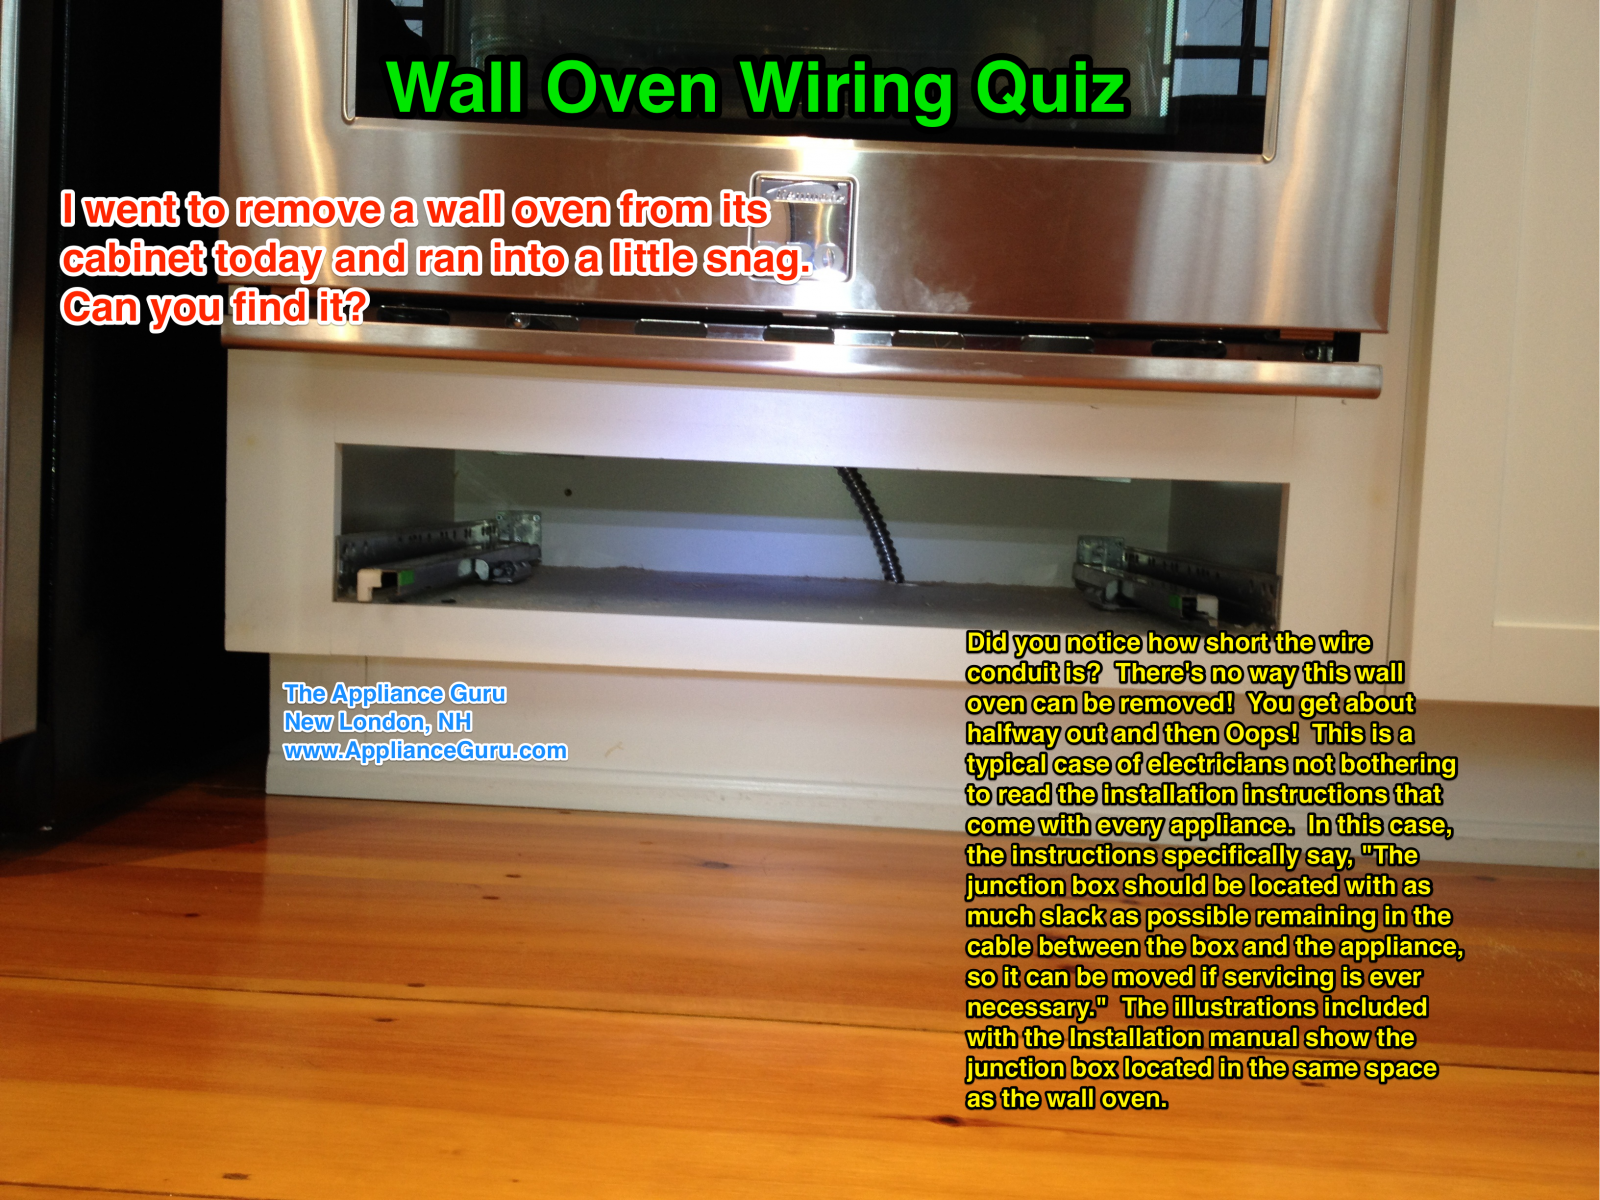 gallery_4_85_1107444 wall oven wiring fail samurai appliance repair man's blog wiring a wall oven at nearapp.co